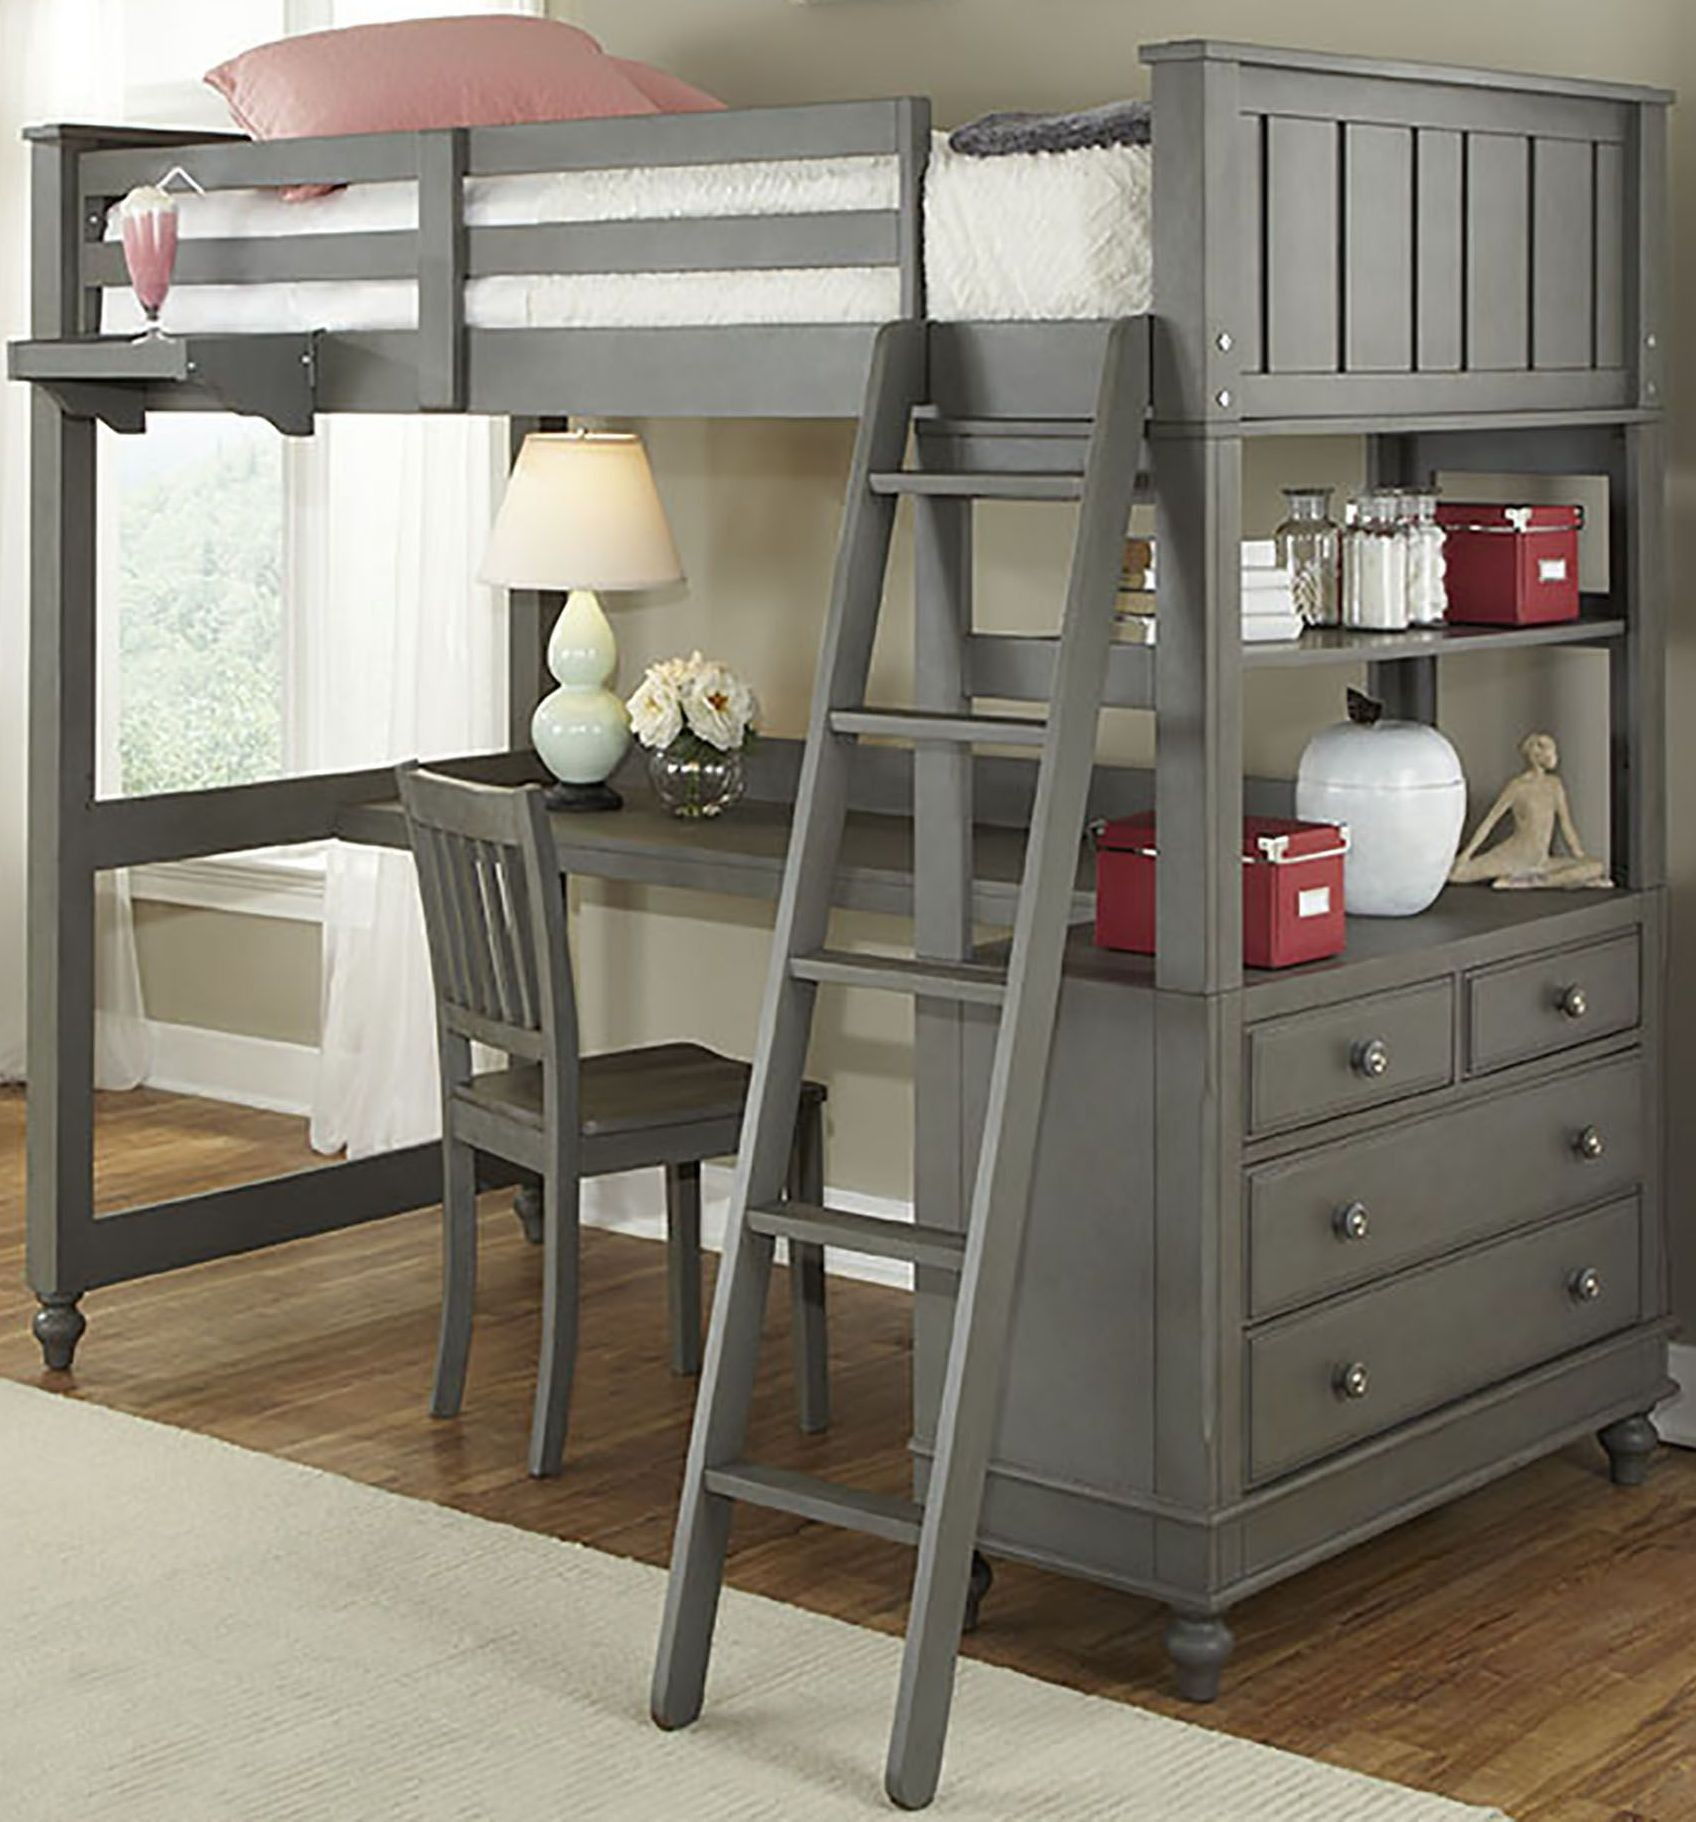 Lake House Stone Twin Loft Bed with Desk, 2040ND, NE Kids